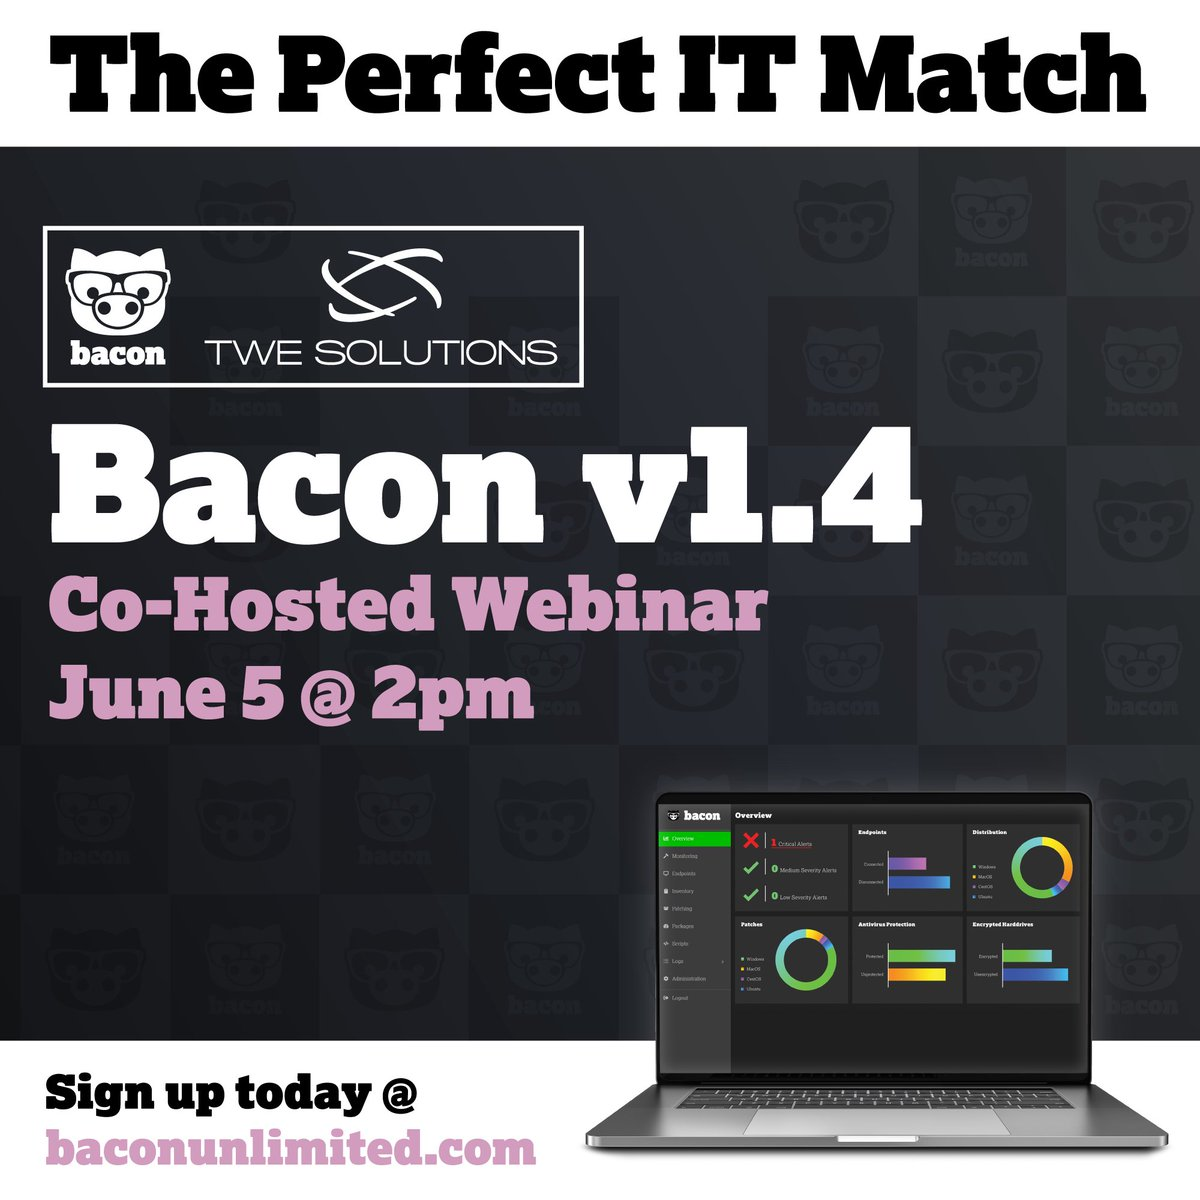 LAST CHANCE TO REGISTER for tomorrow's #webinar with #BaconUnlimited and #TWEsolutions! https://baconunlimited.com/  #getbacon #showyourbacon #itsupport #itsecurity #itconsulting #techsupport #tech #technology #crossplatform #windows #mac #linux #itsoftware #softwarepic.twitter.com/wWrbr6i08t